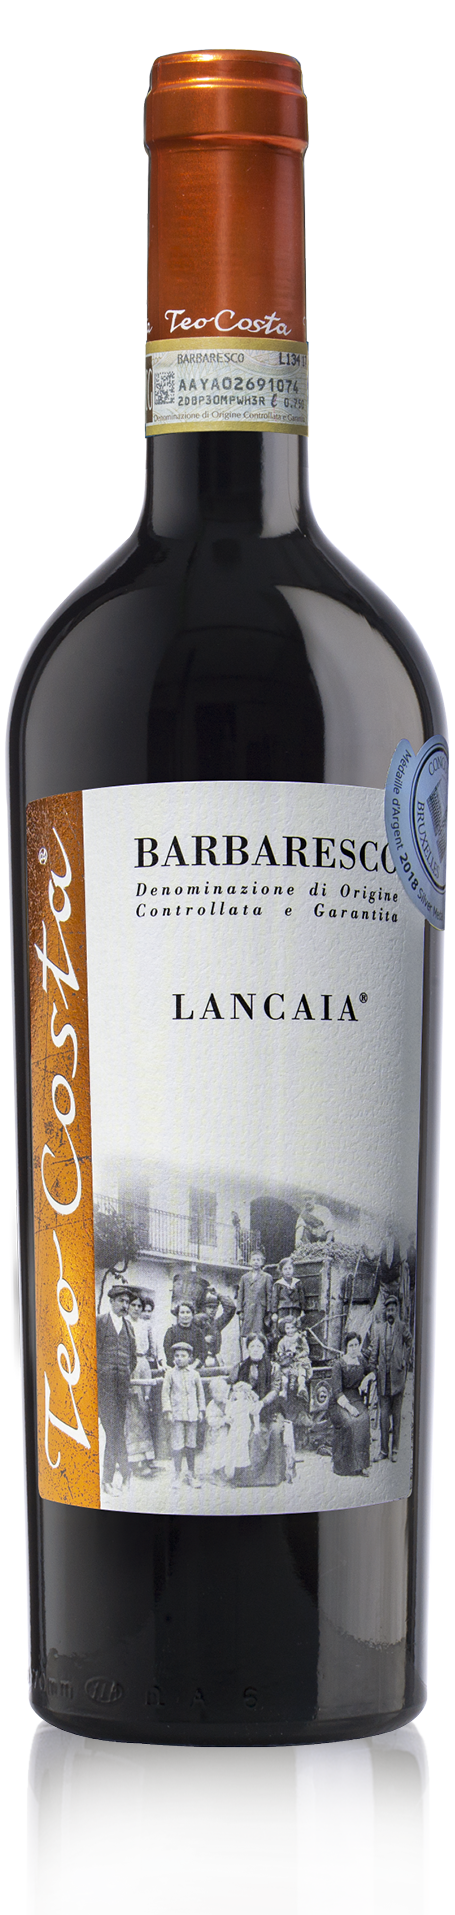 Teo Costa - Barbaresco